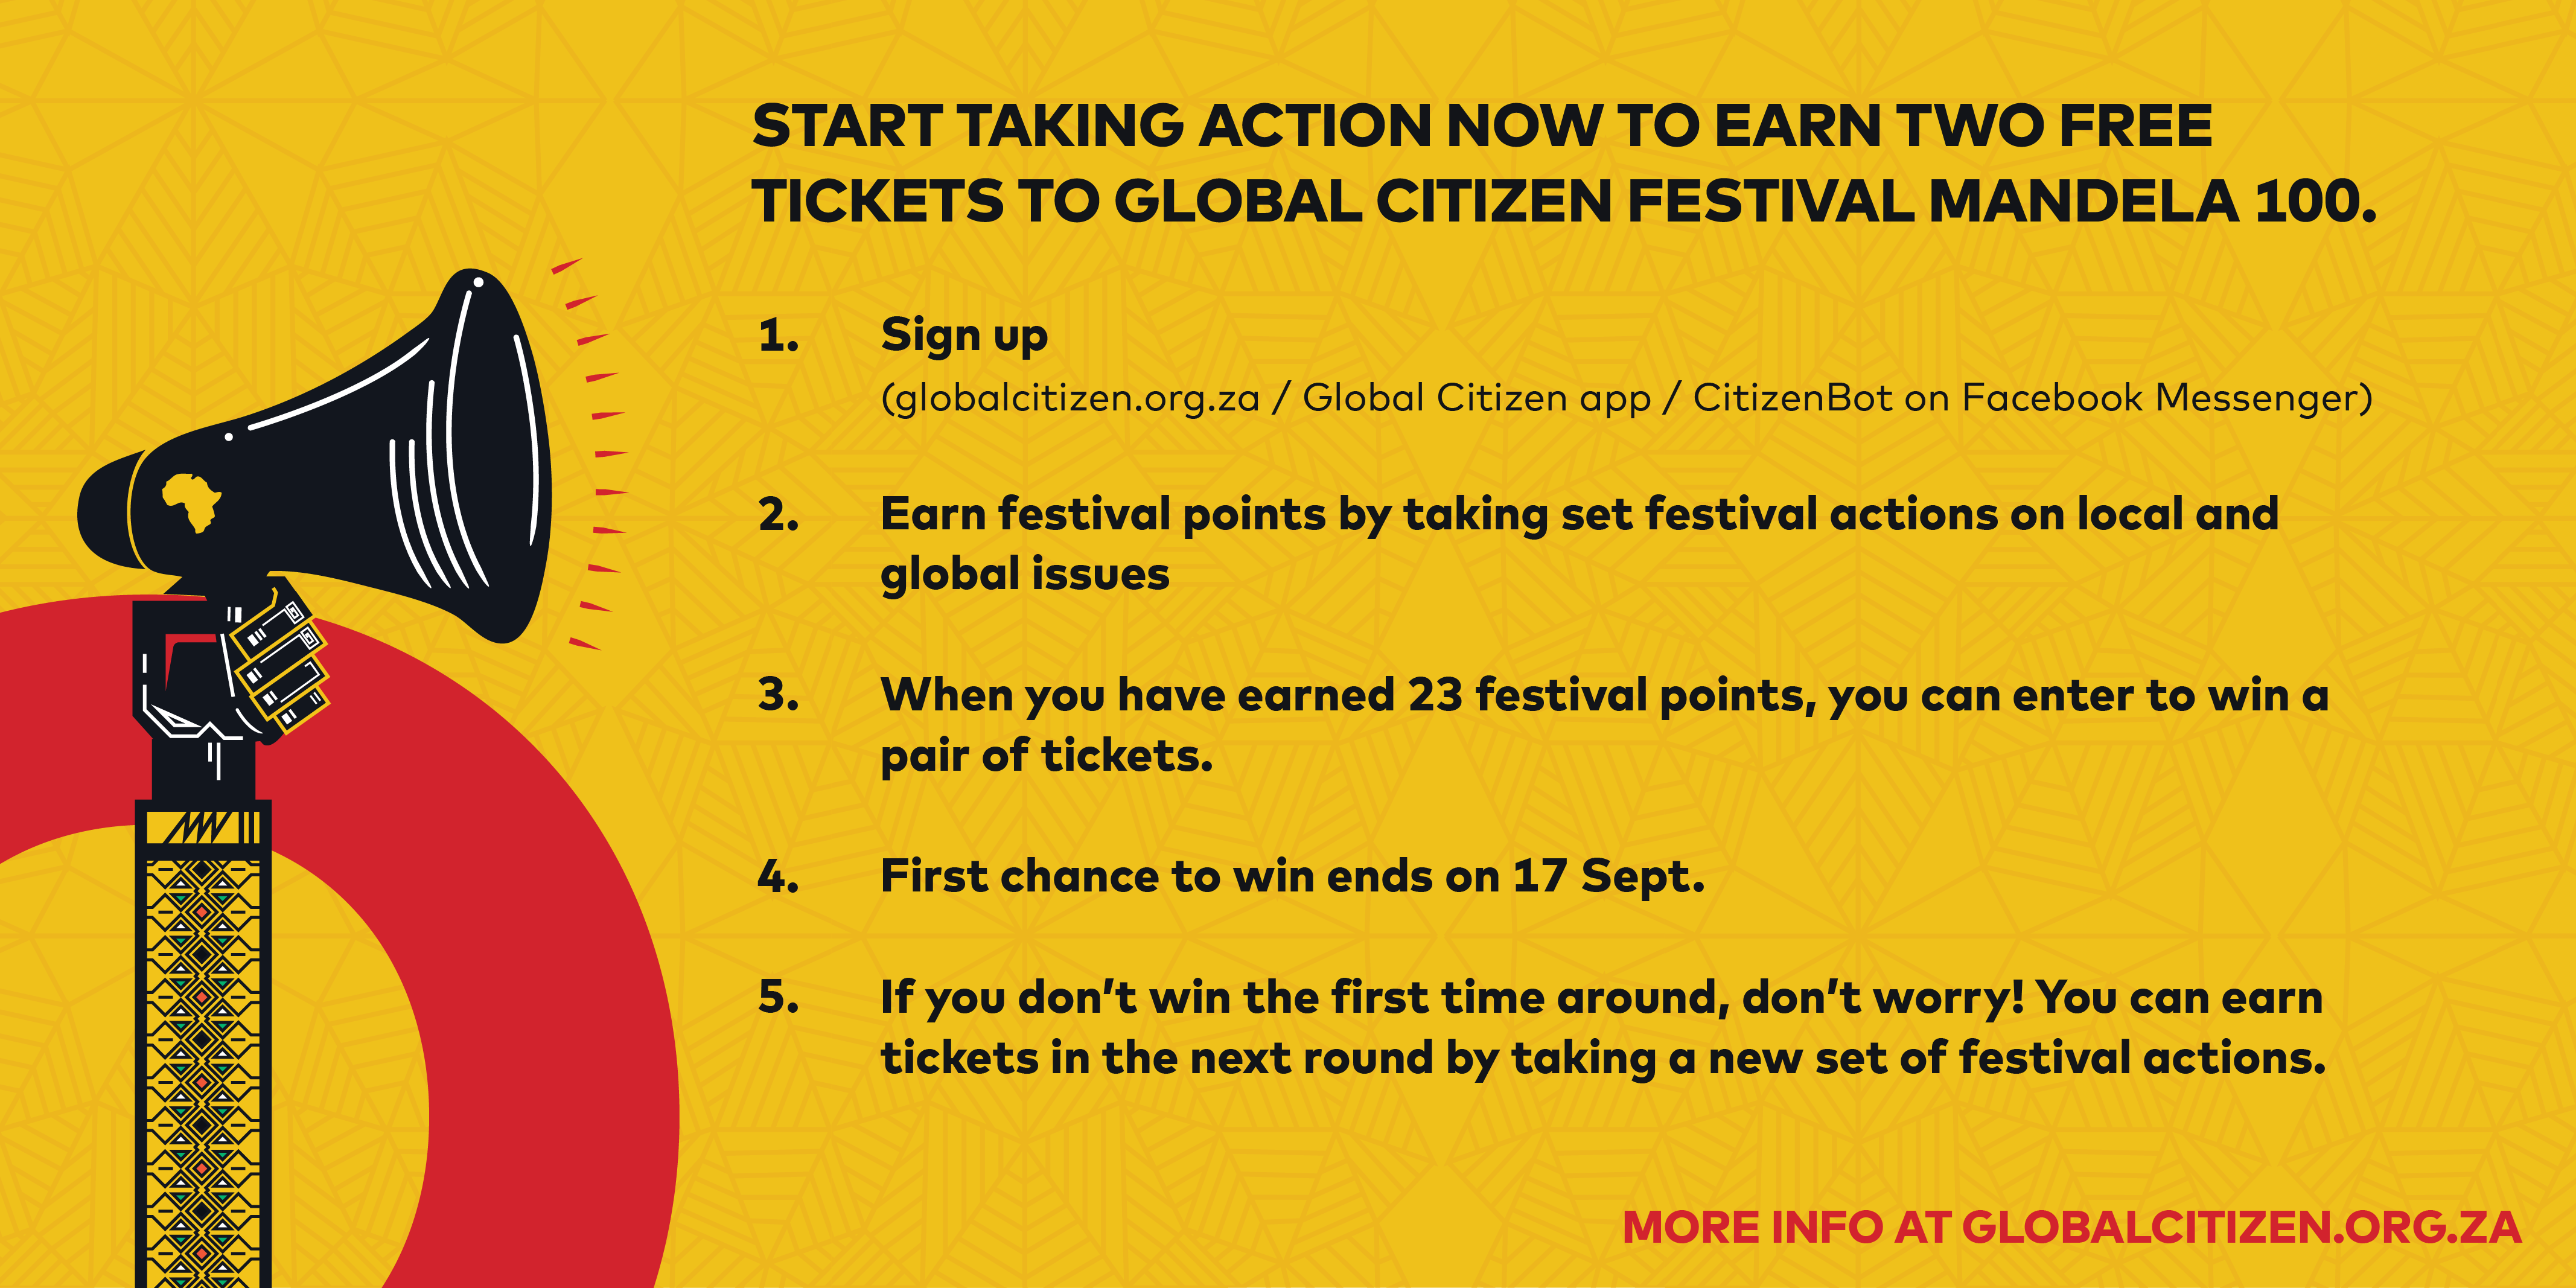 How to Get Tickets to Global Citizen Festival in South Africa